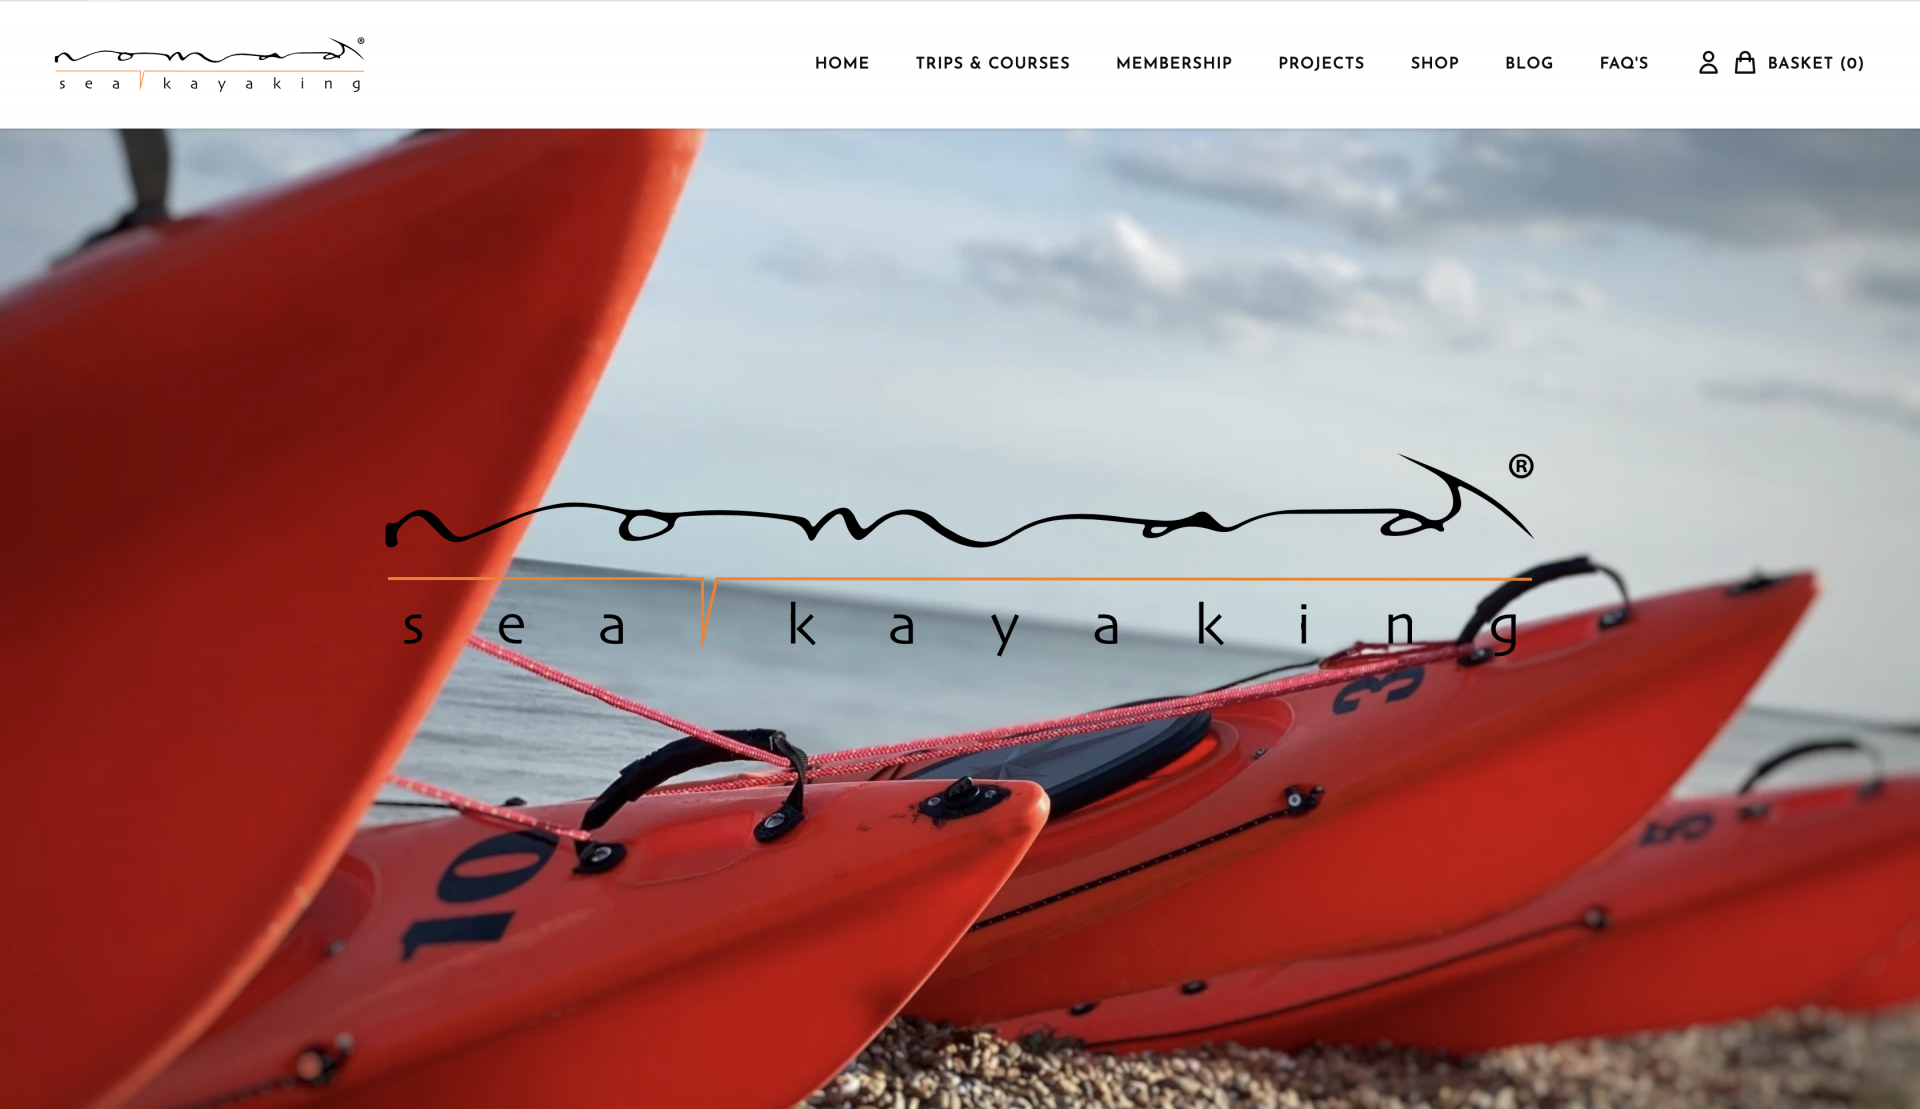 /storage/Home page of the new web site showing matching orange kayaks lined up on a shingle beach with blue skies in the background.